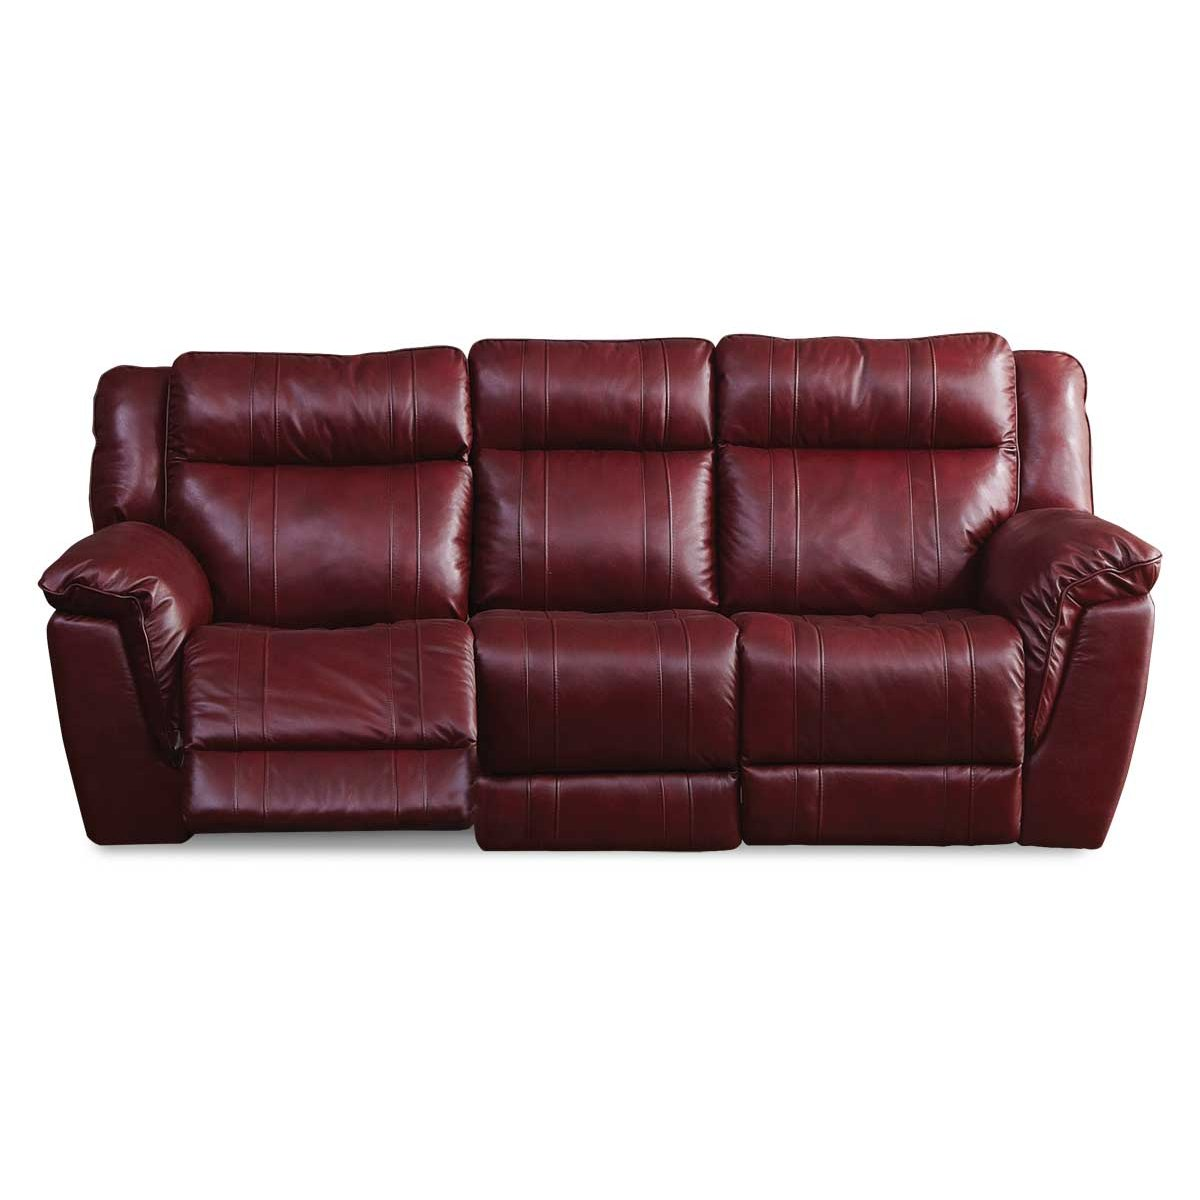 Chocolate brown microfiber motion recliner loveseat sofa sofa menzilperde net Chocolate loveseat